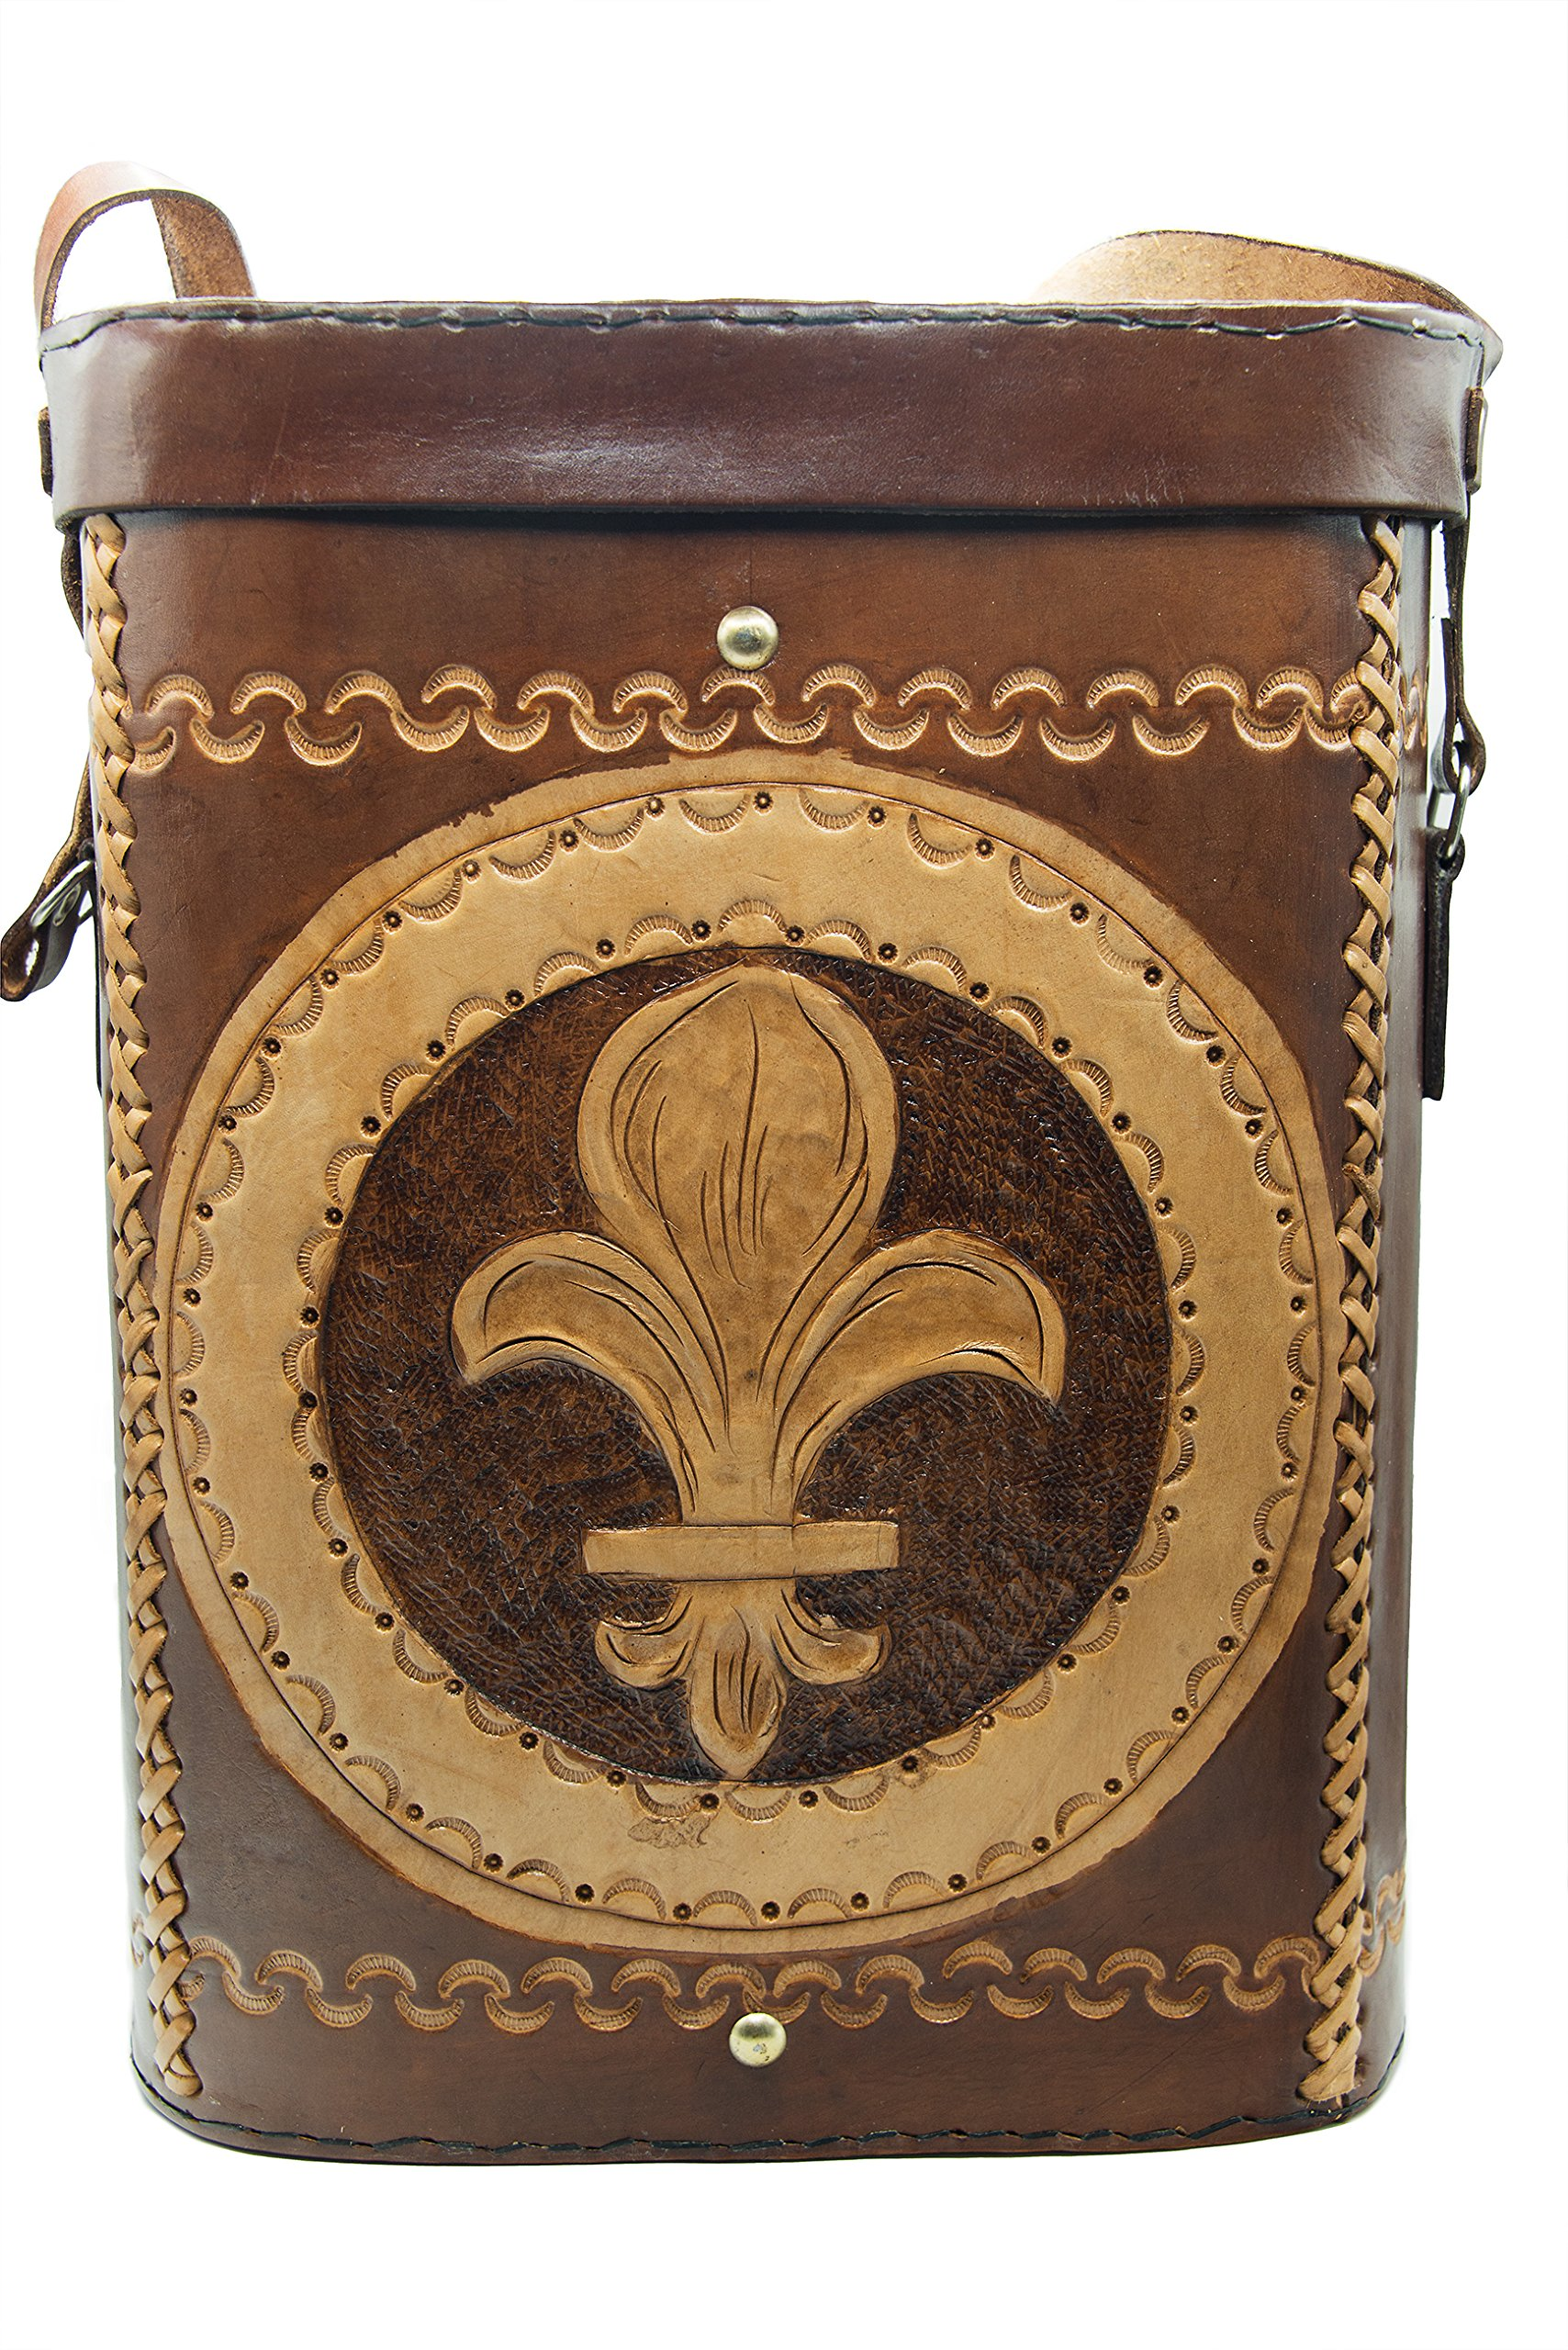 Handmade carry and store cross-body leather bag for yerba mate accessories (Fleur De Lis)